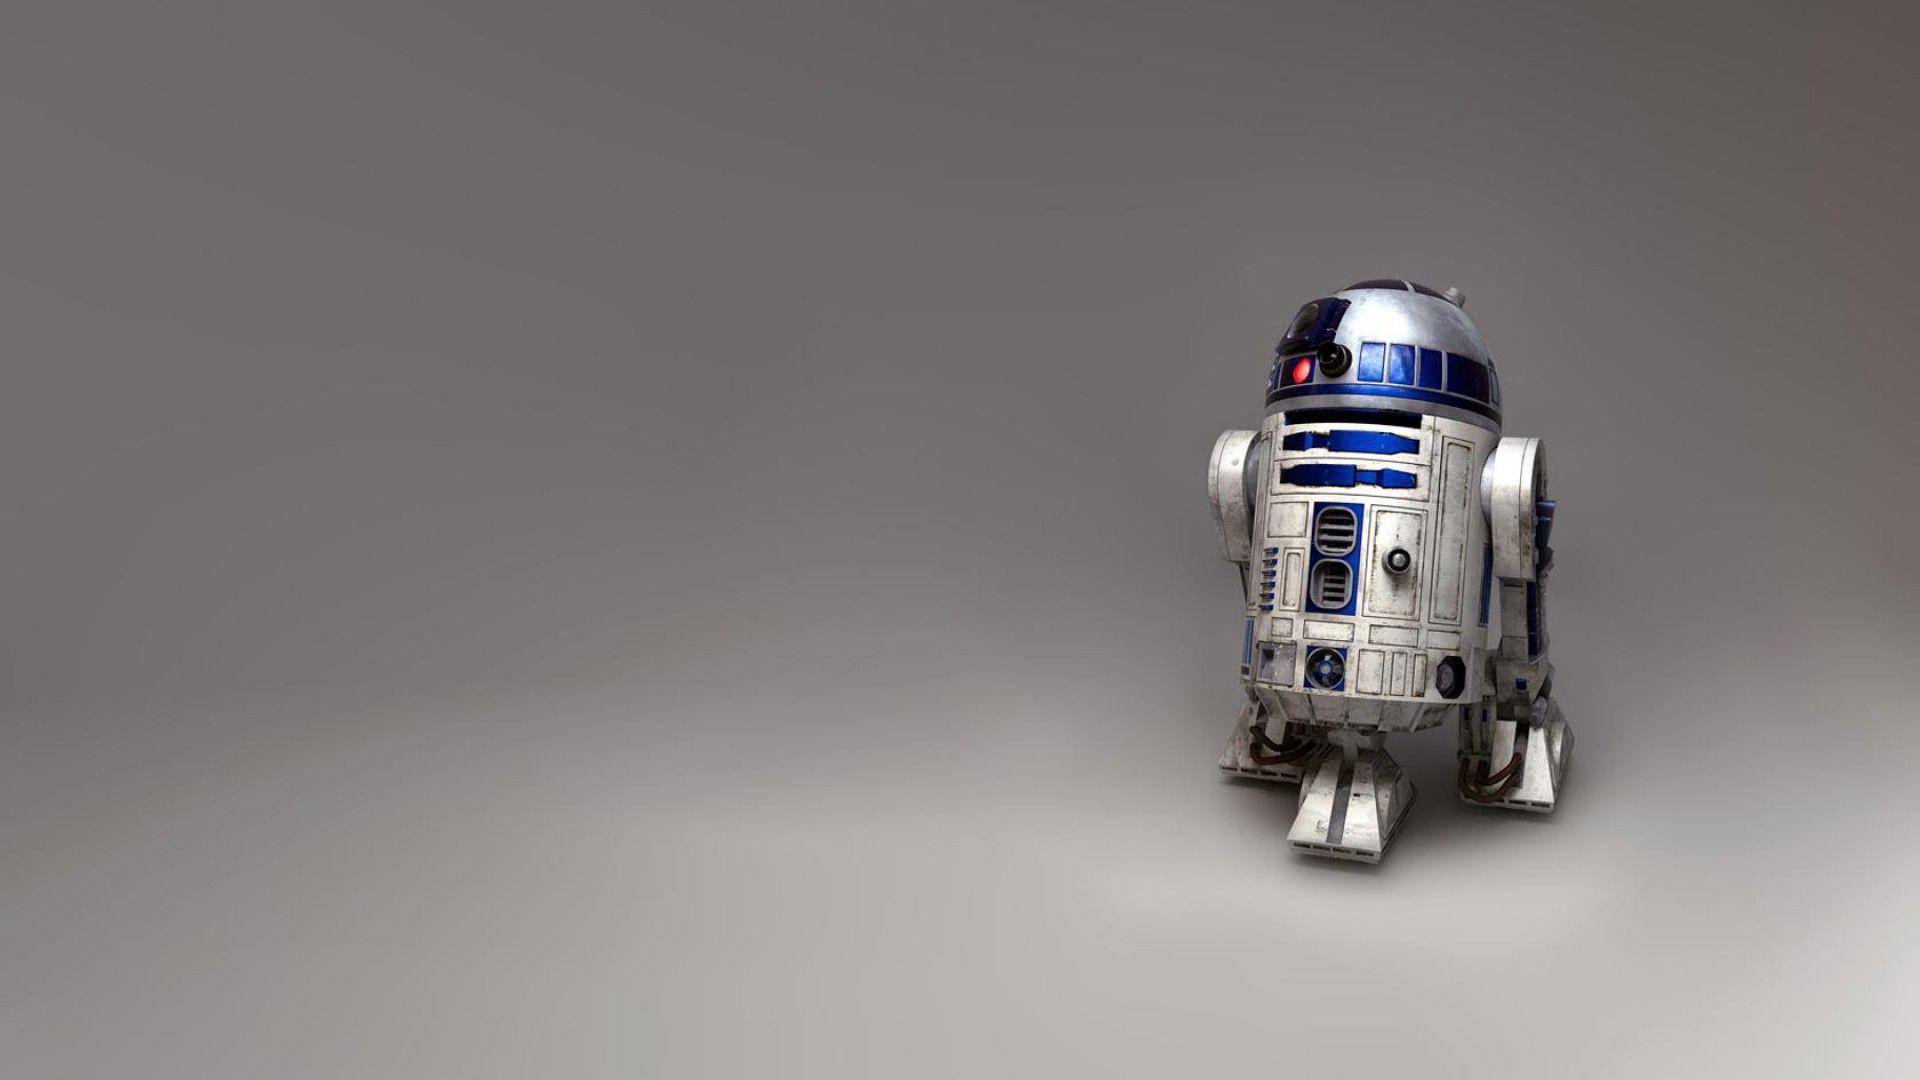 Star Wars R2d2 1920x1200 Wallpapers